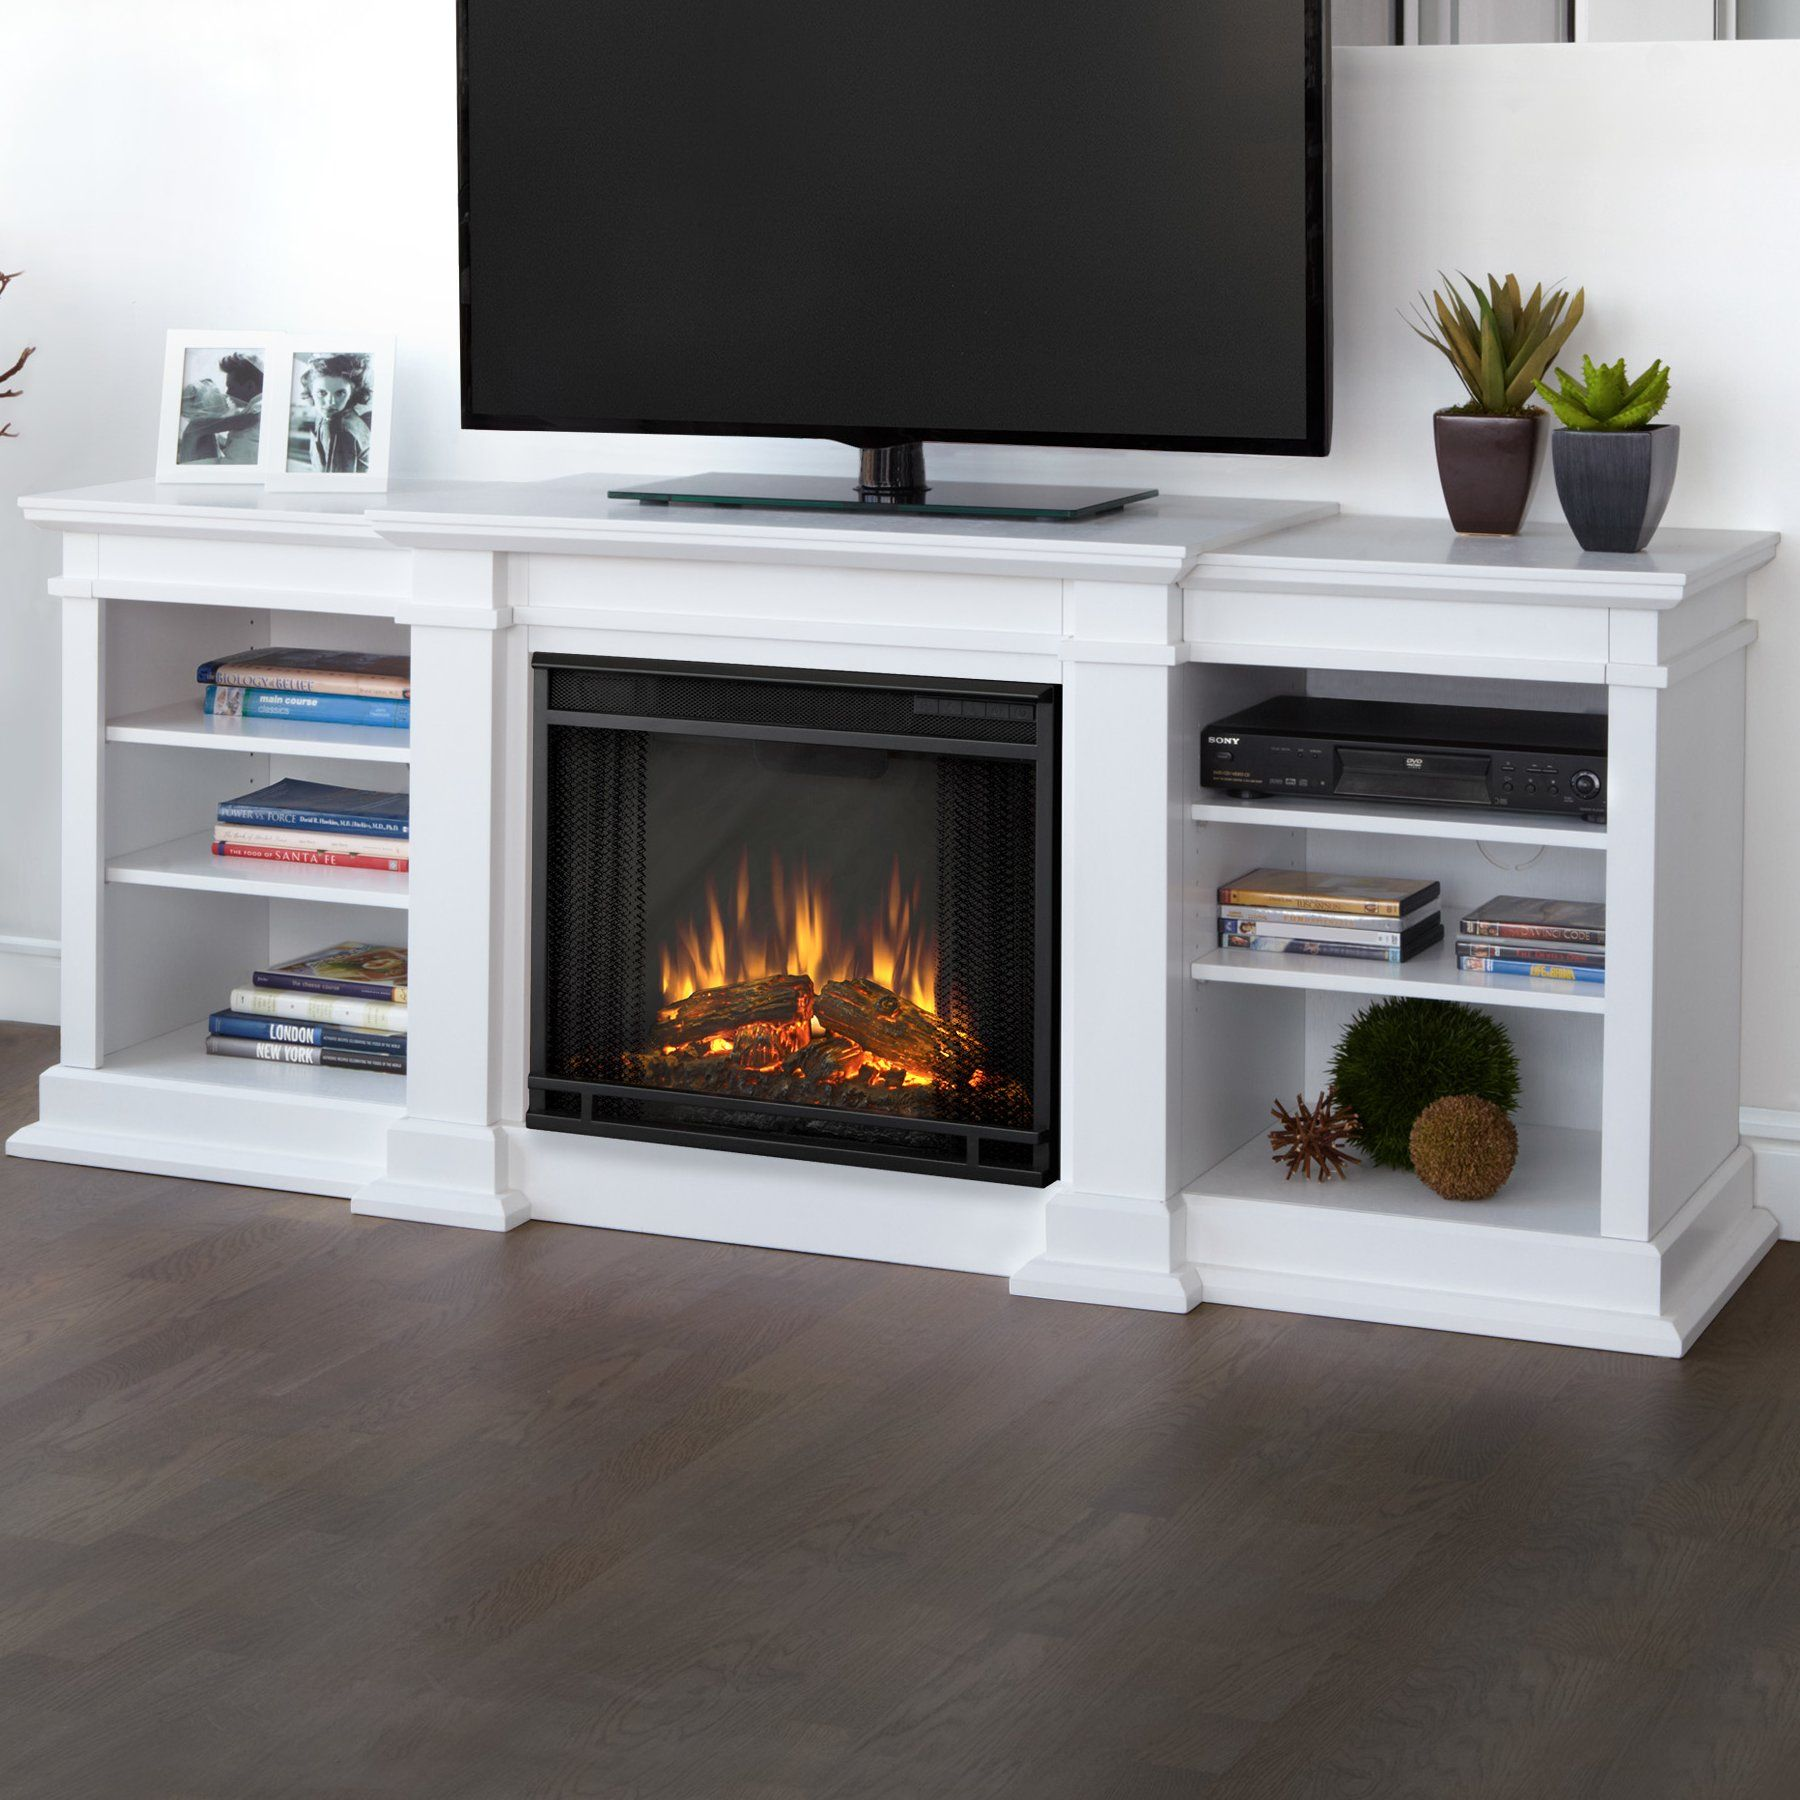 wayfair fireplace tv stand Real Flame Fresno TV Stand with Electric Fireplace Reviews  wayfair fireplace tv stand